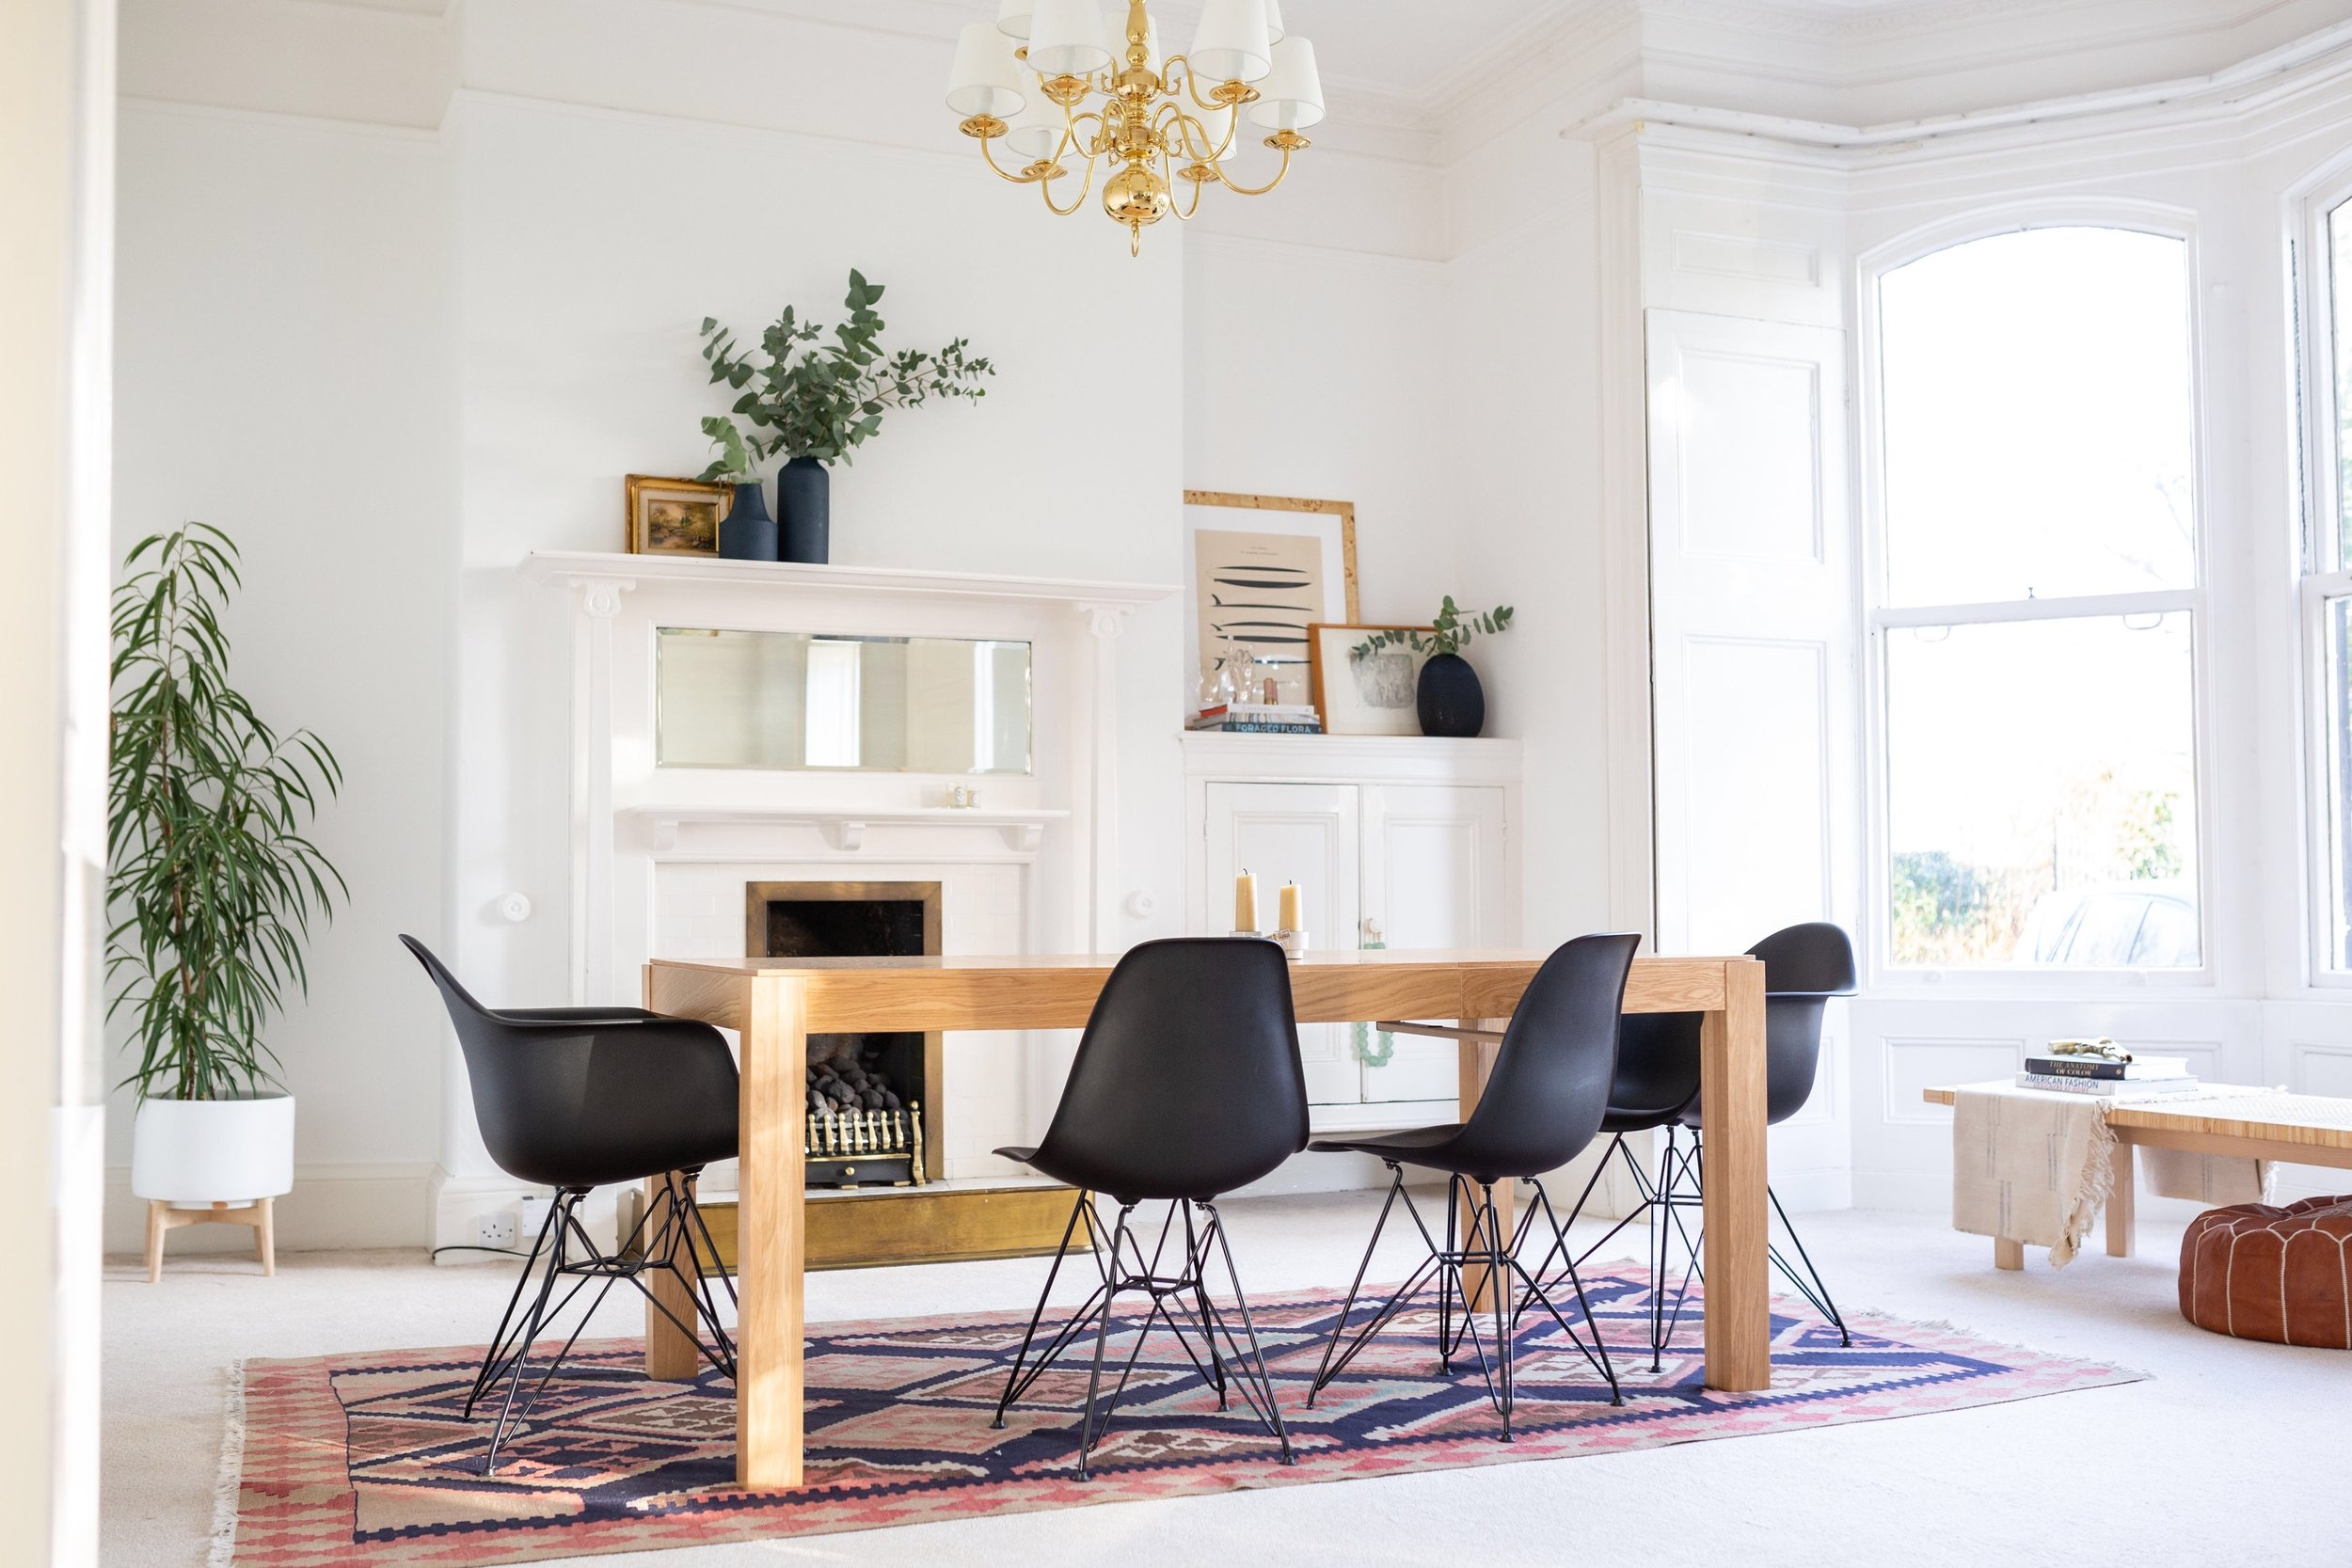 Our black Eames eiffel chairs looking right as home in this victorian